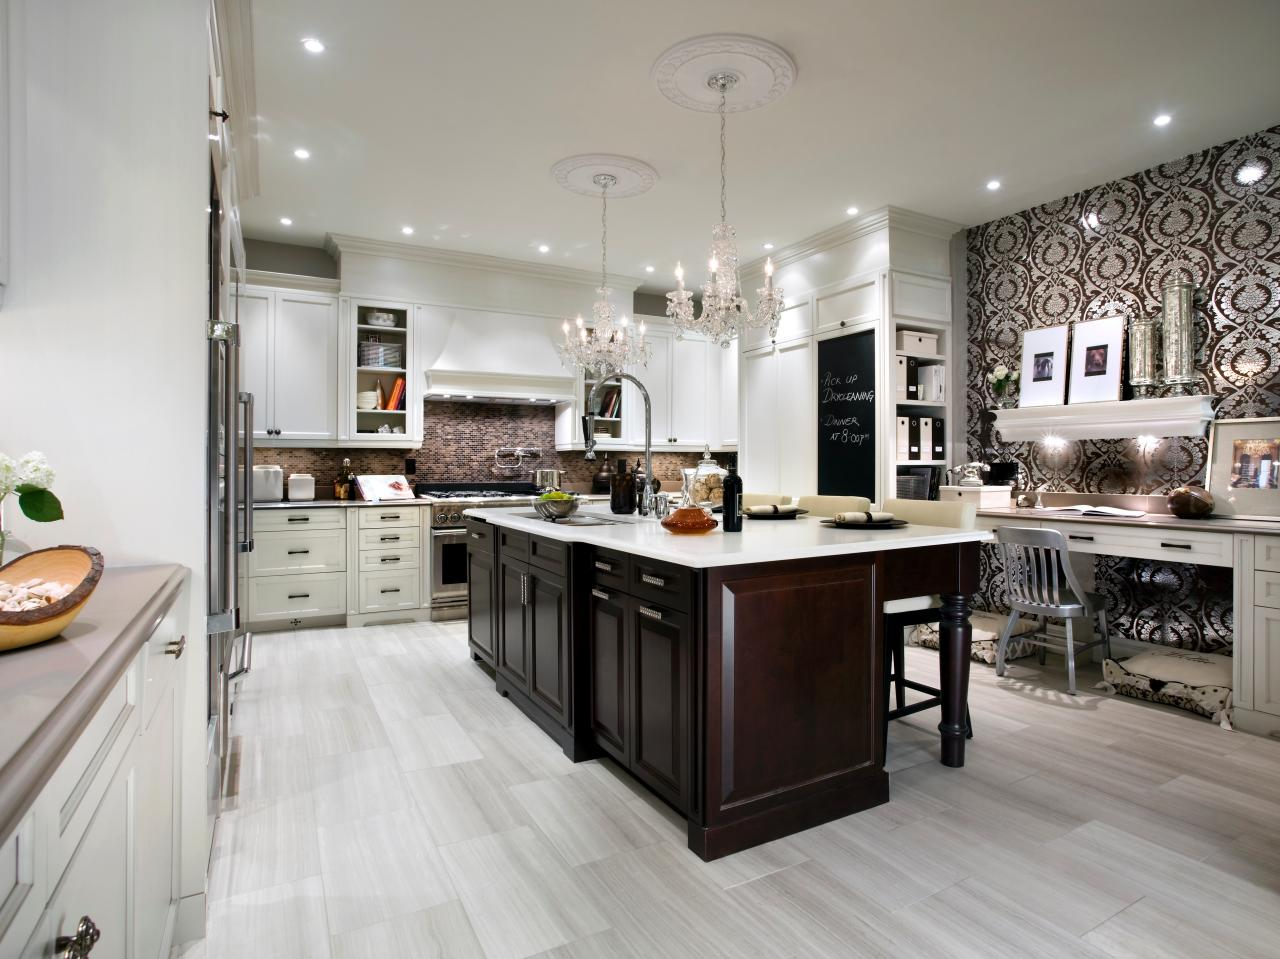 candice olson kitchens pictures photo - 2